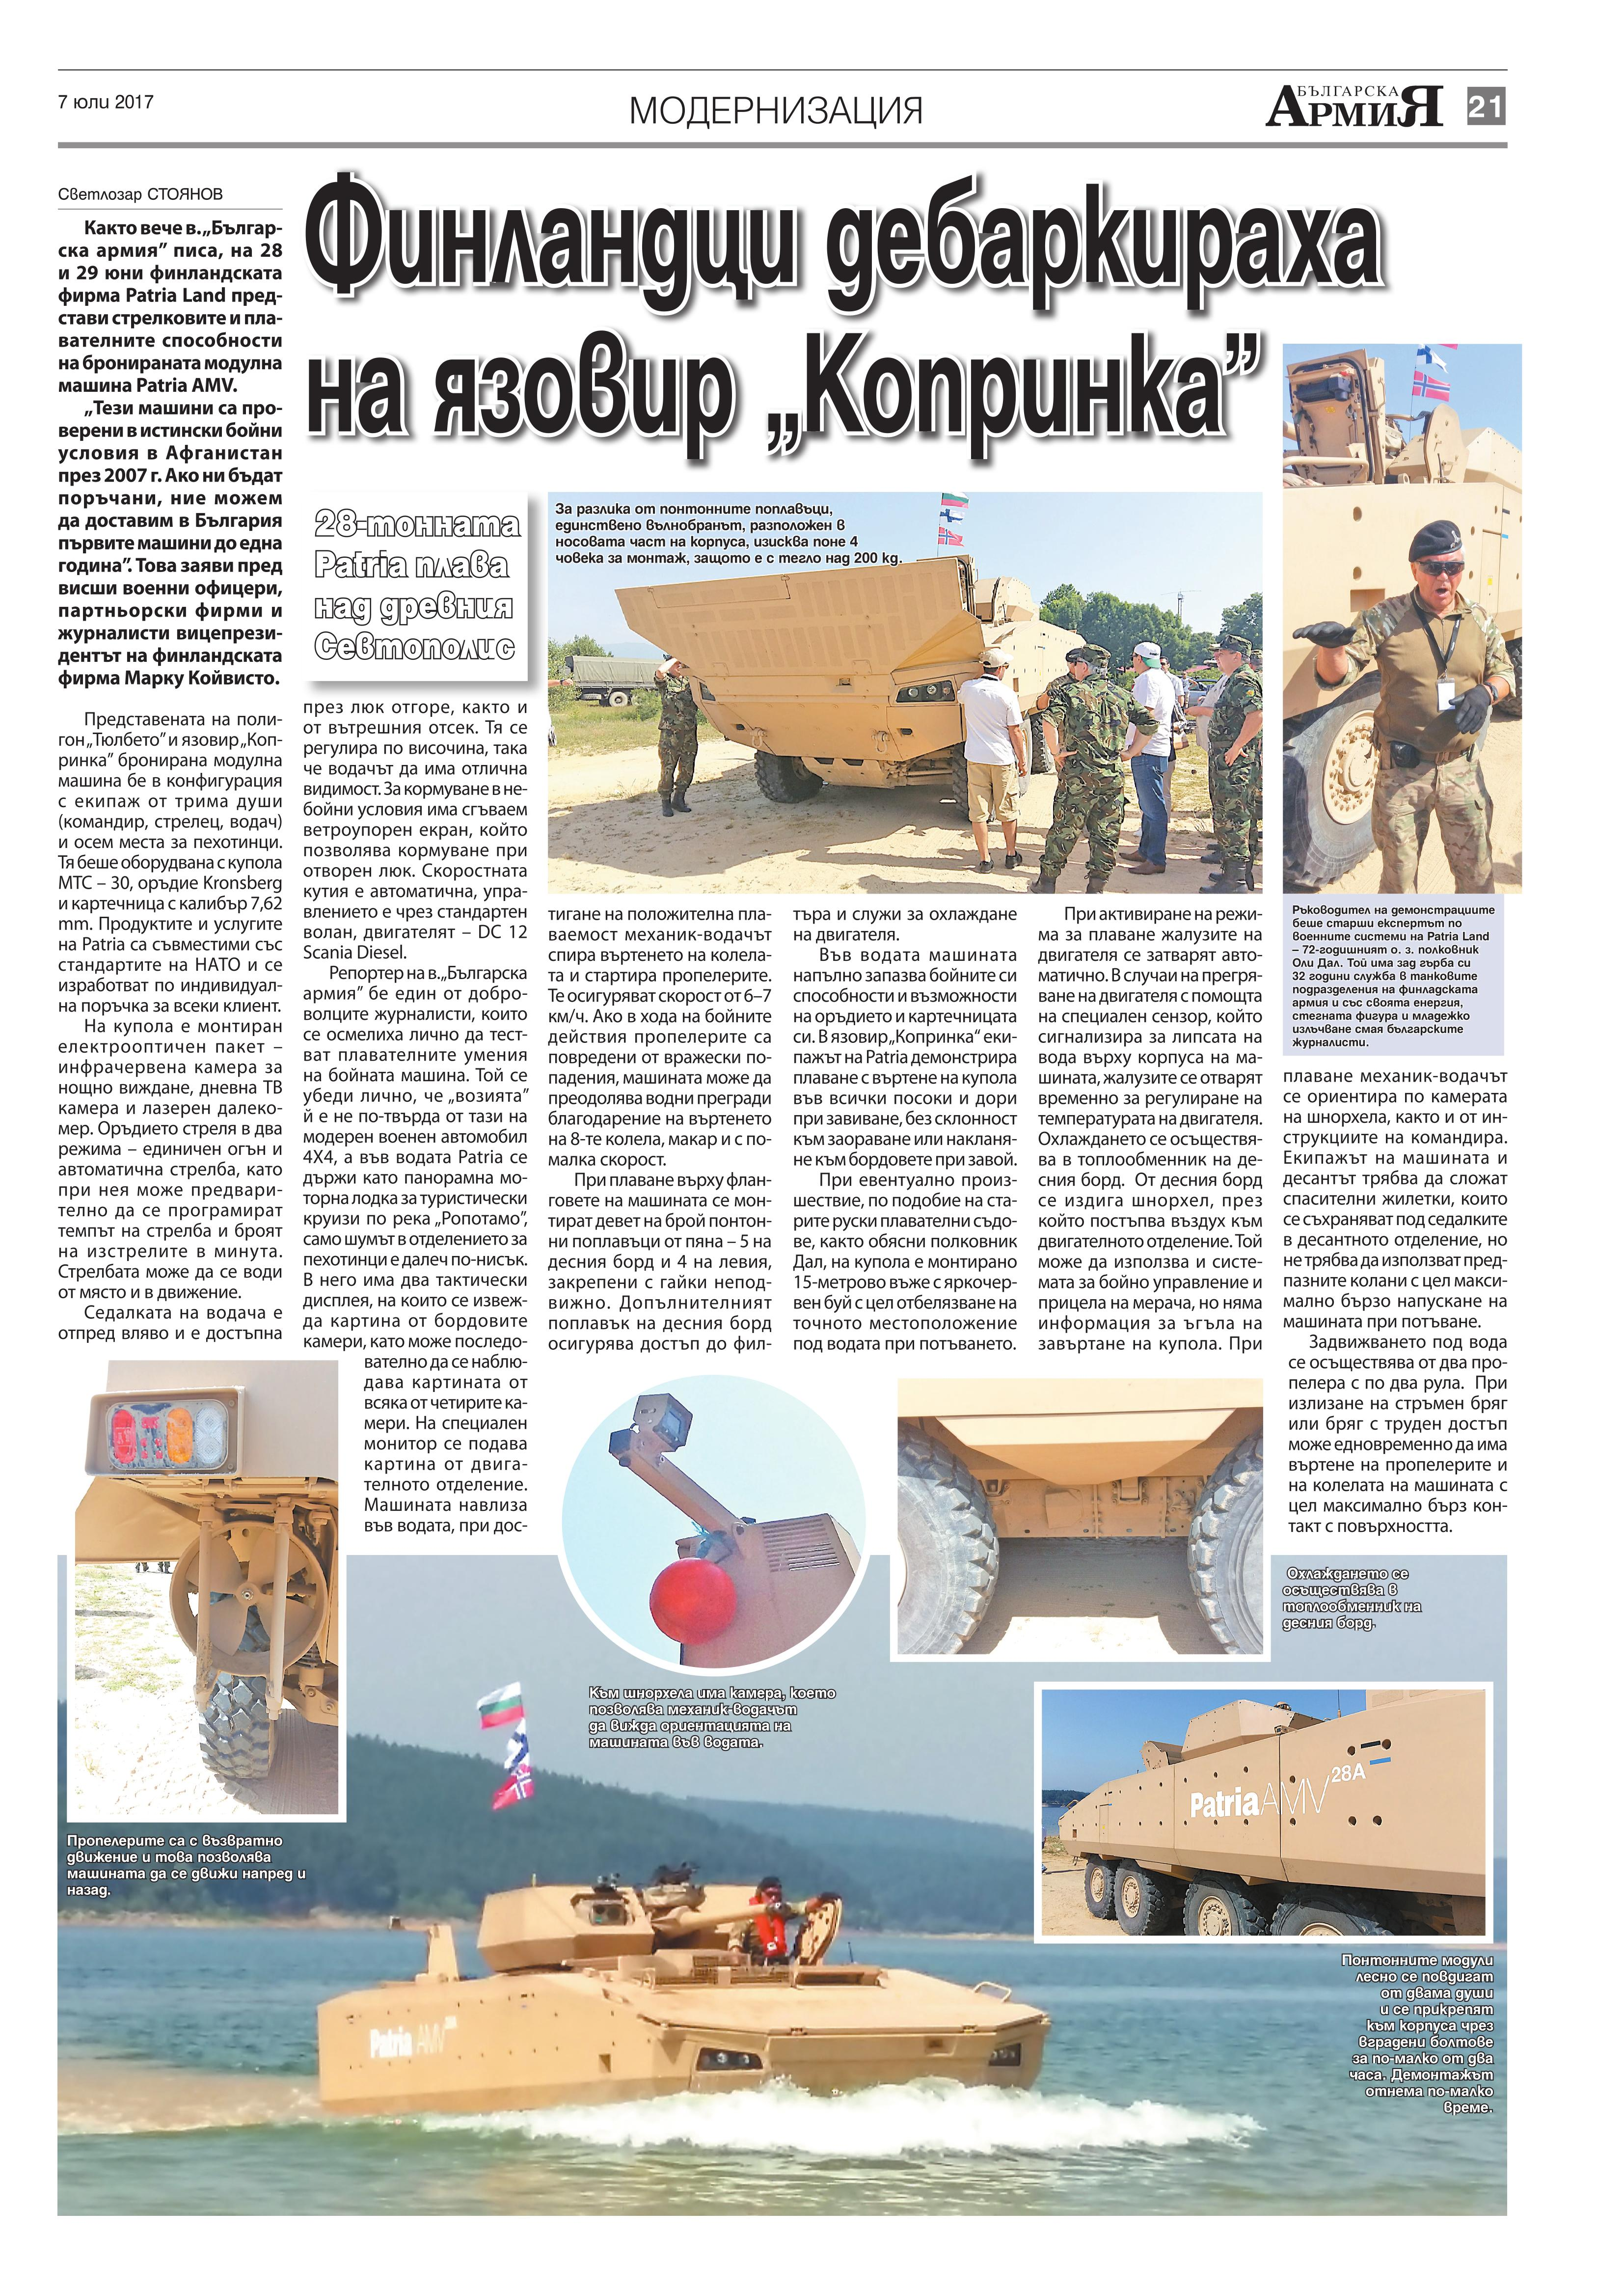 https://www.armymedia.bg/wp-content/uploads/2015/06/21.page1_-24.jpg